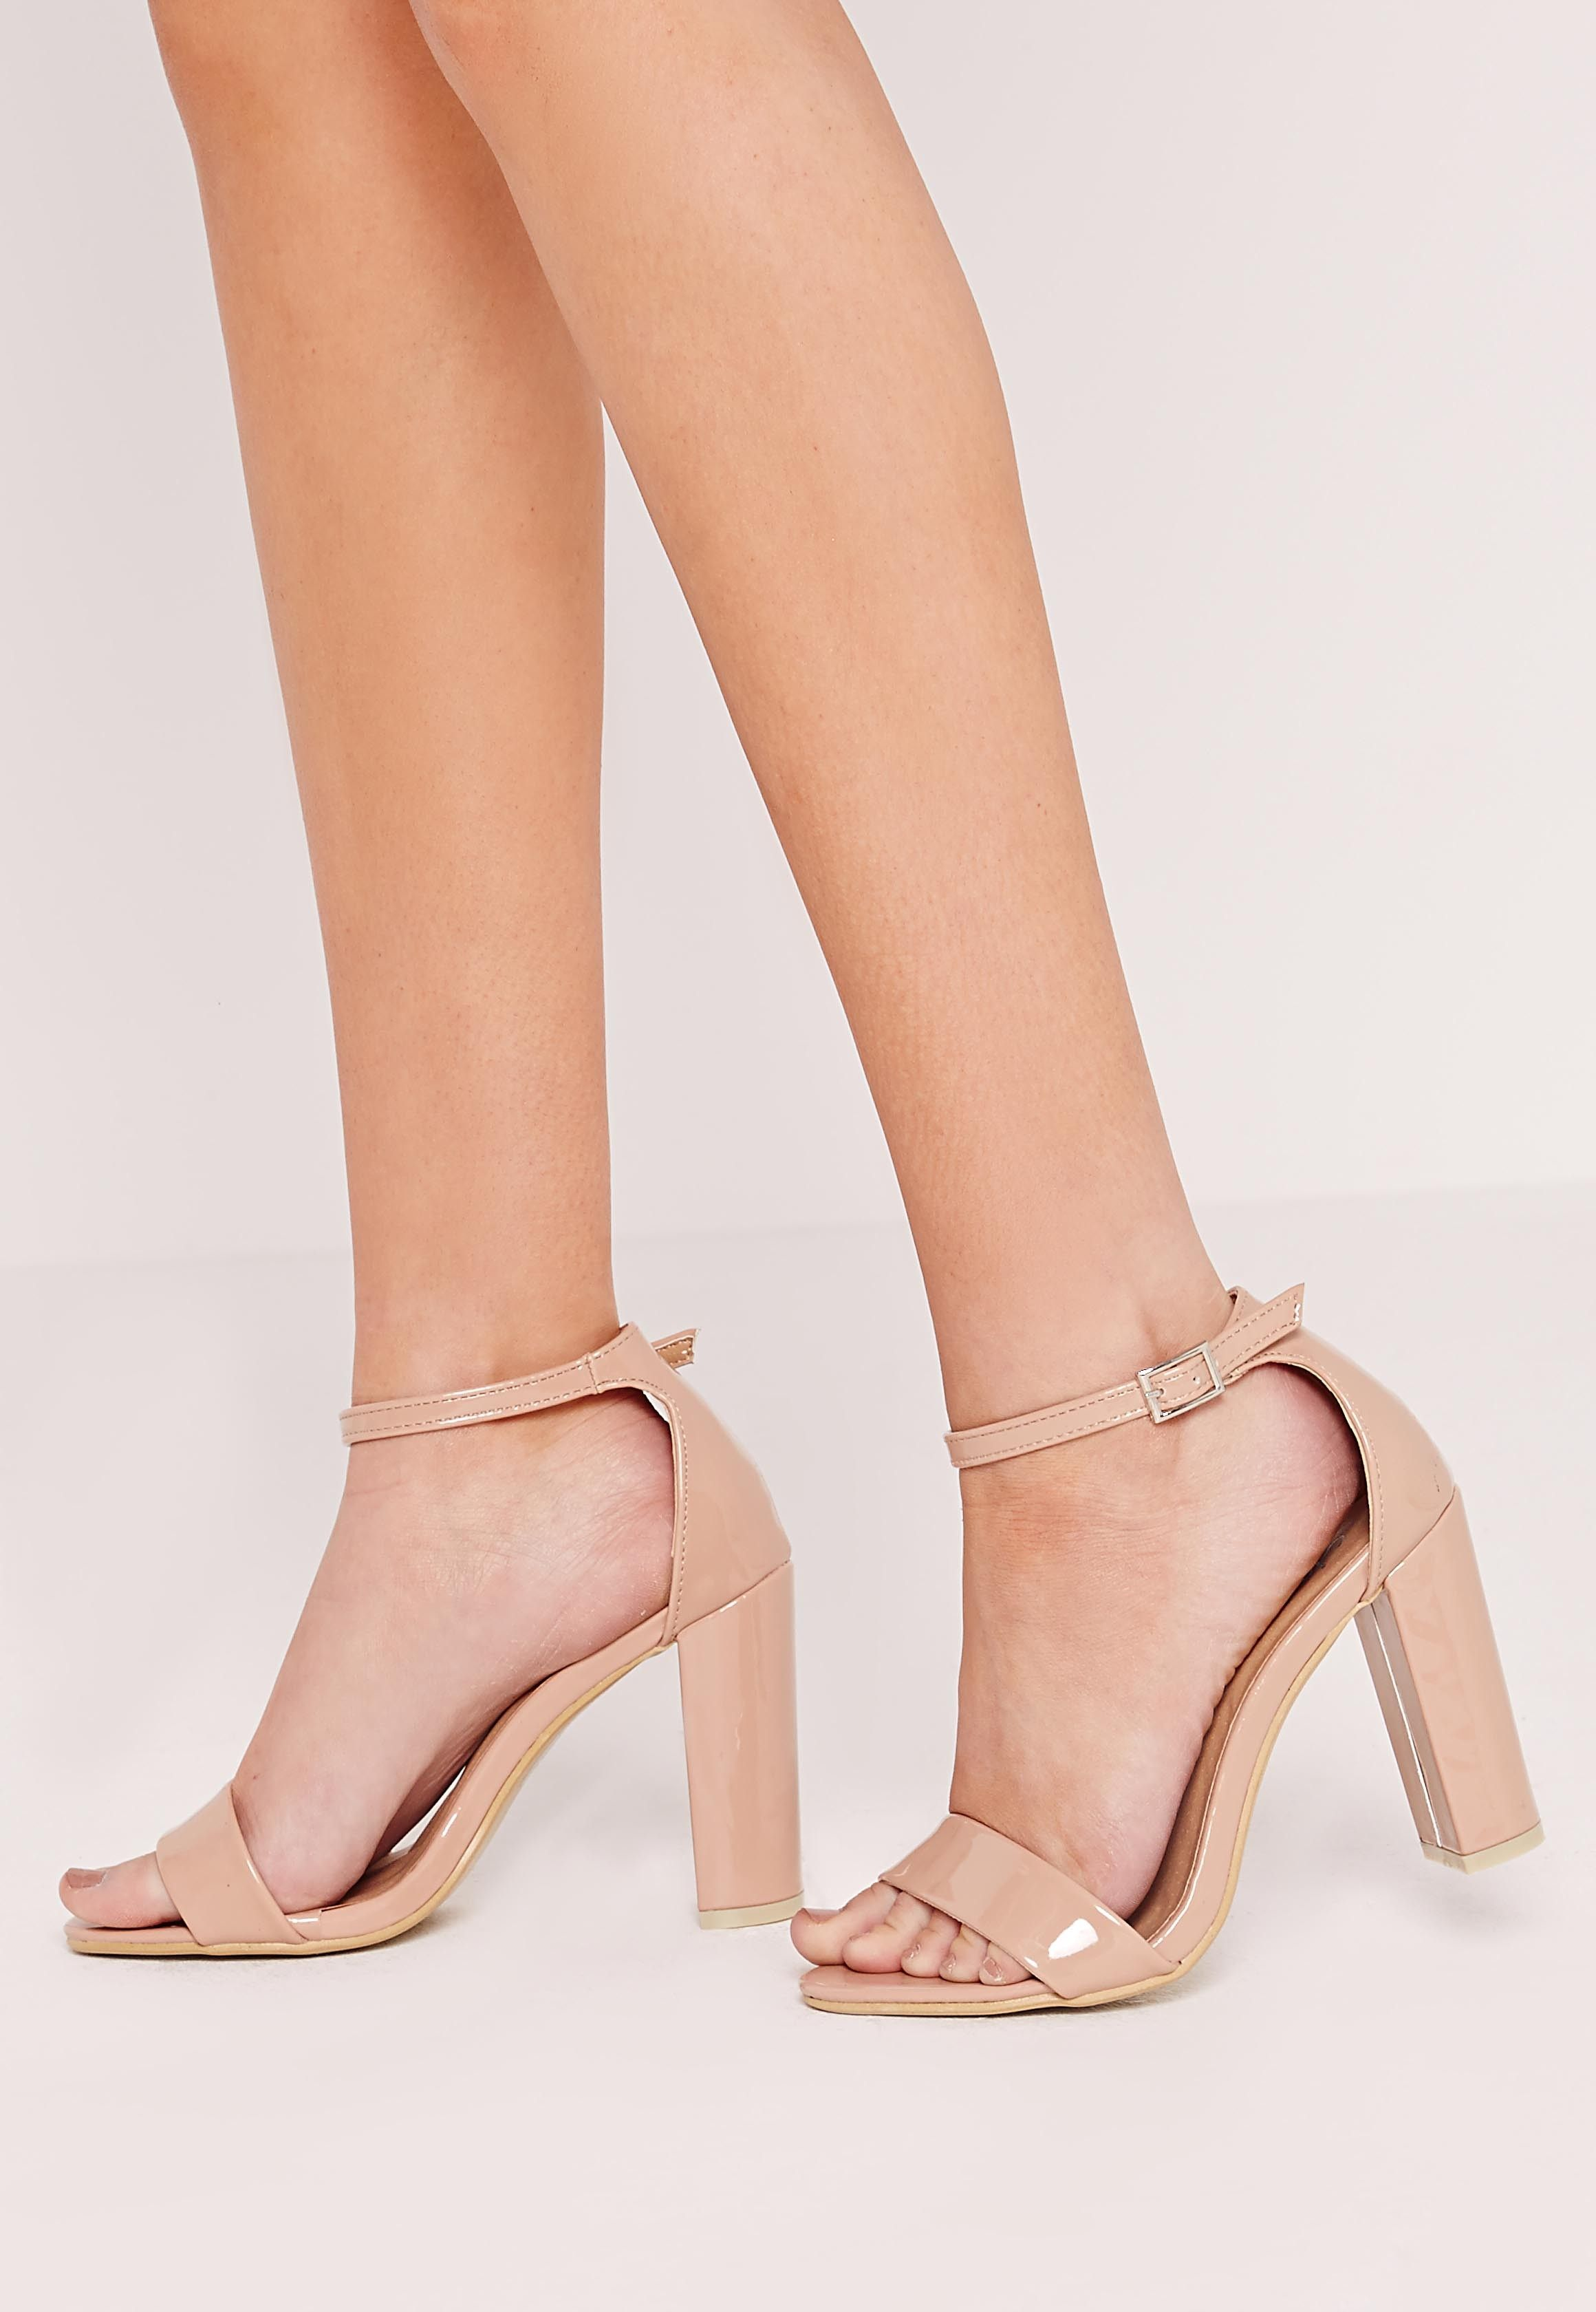 420ac73cce1b Missguided - Block heel thick strap barely there sandals nude ...